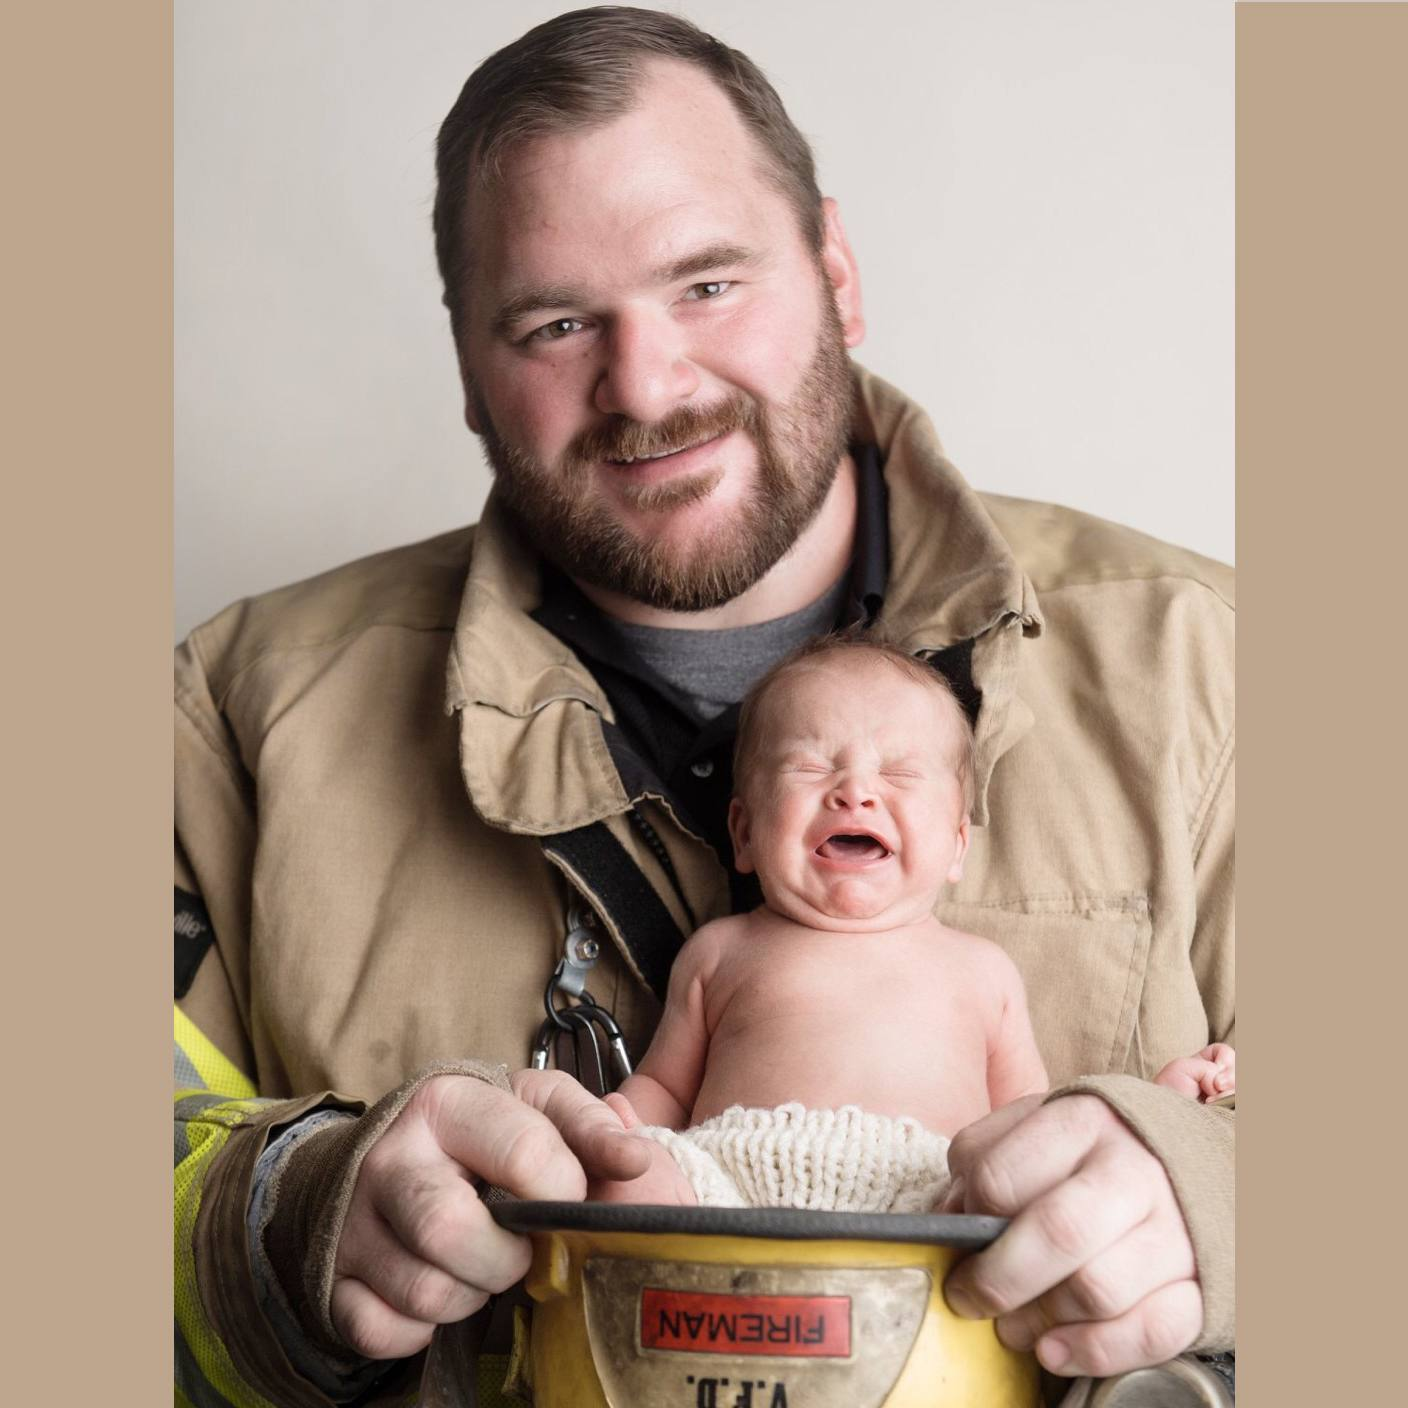 Tumor patient Derin Gebhardt dressed in firefighter gear holding his young child in his fire hat.